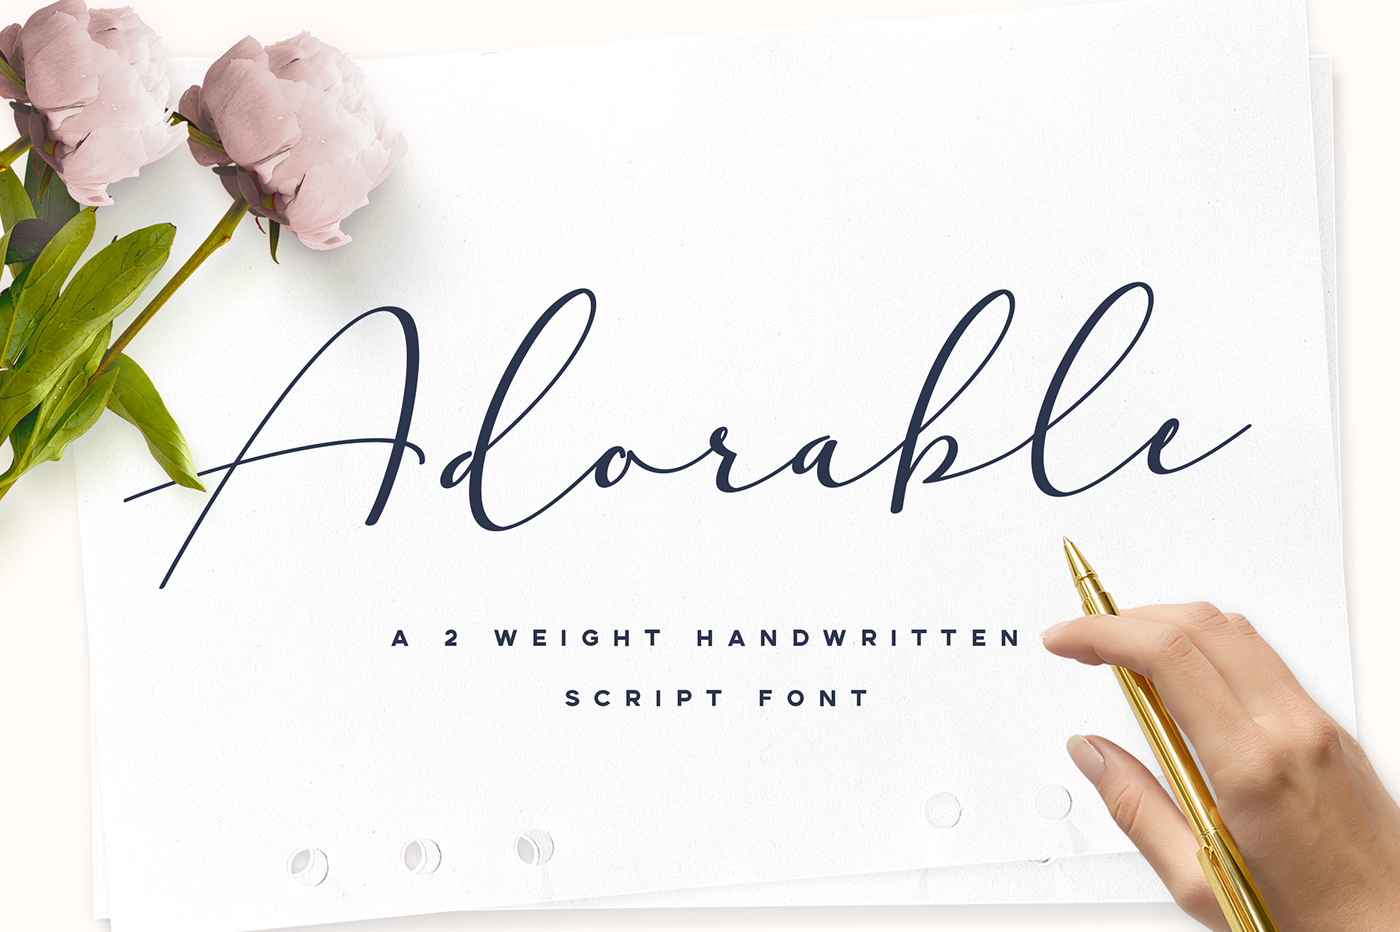 Adorable Handwritten Script Font Is A Modern And Elegant With Wide Right Slanted Touch That Makes It Natural Pleasant